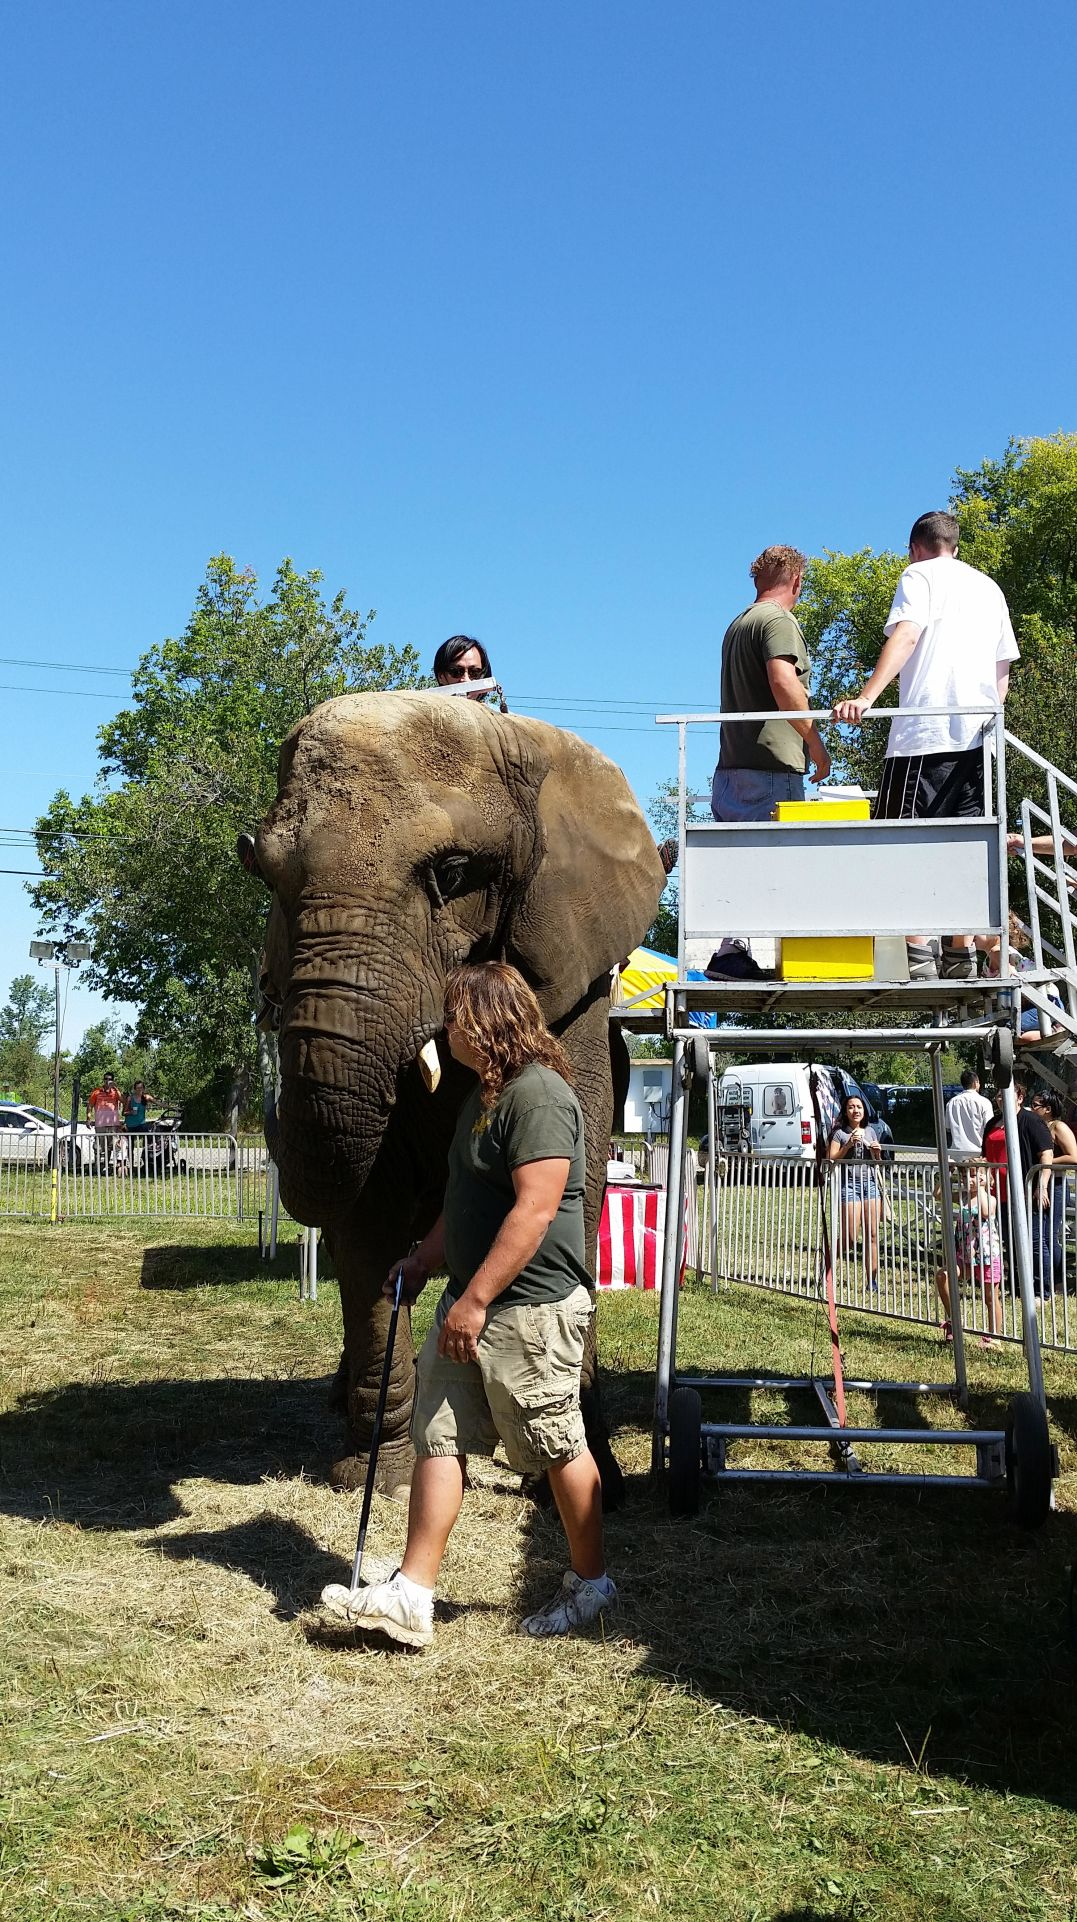 Activists vow to continue efforts to free Goshen elephants after 1 dies